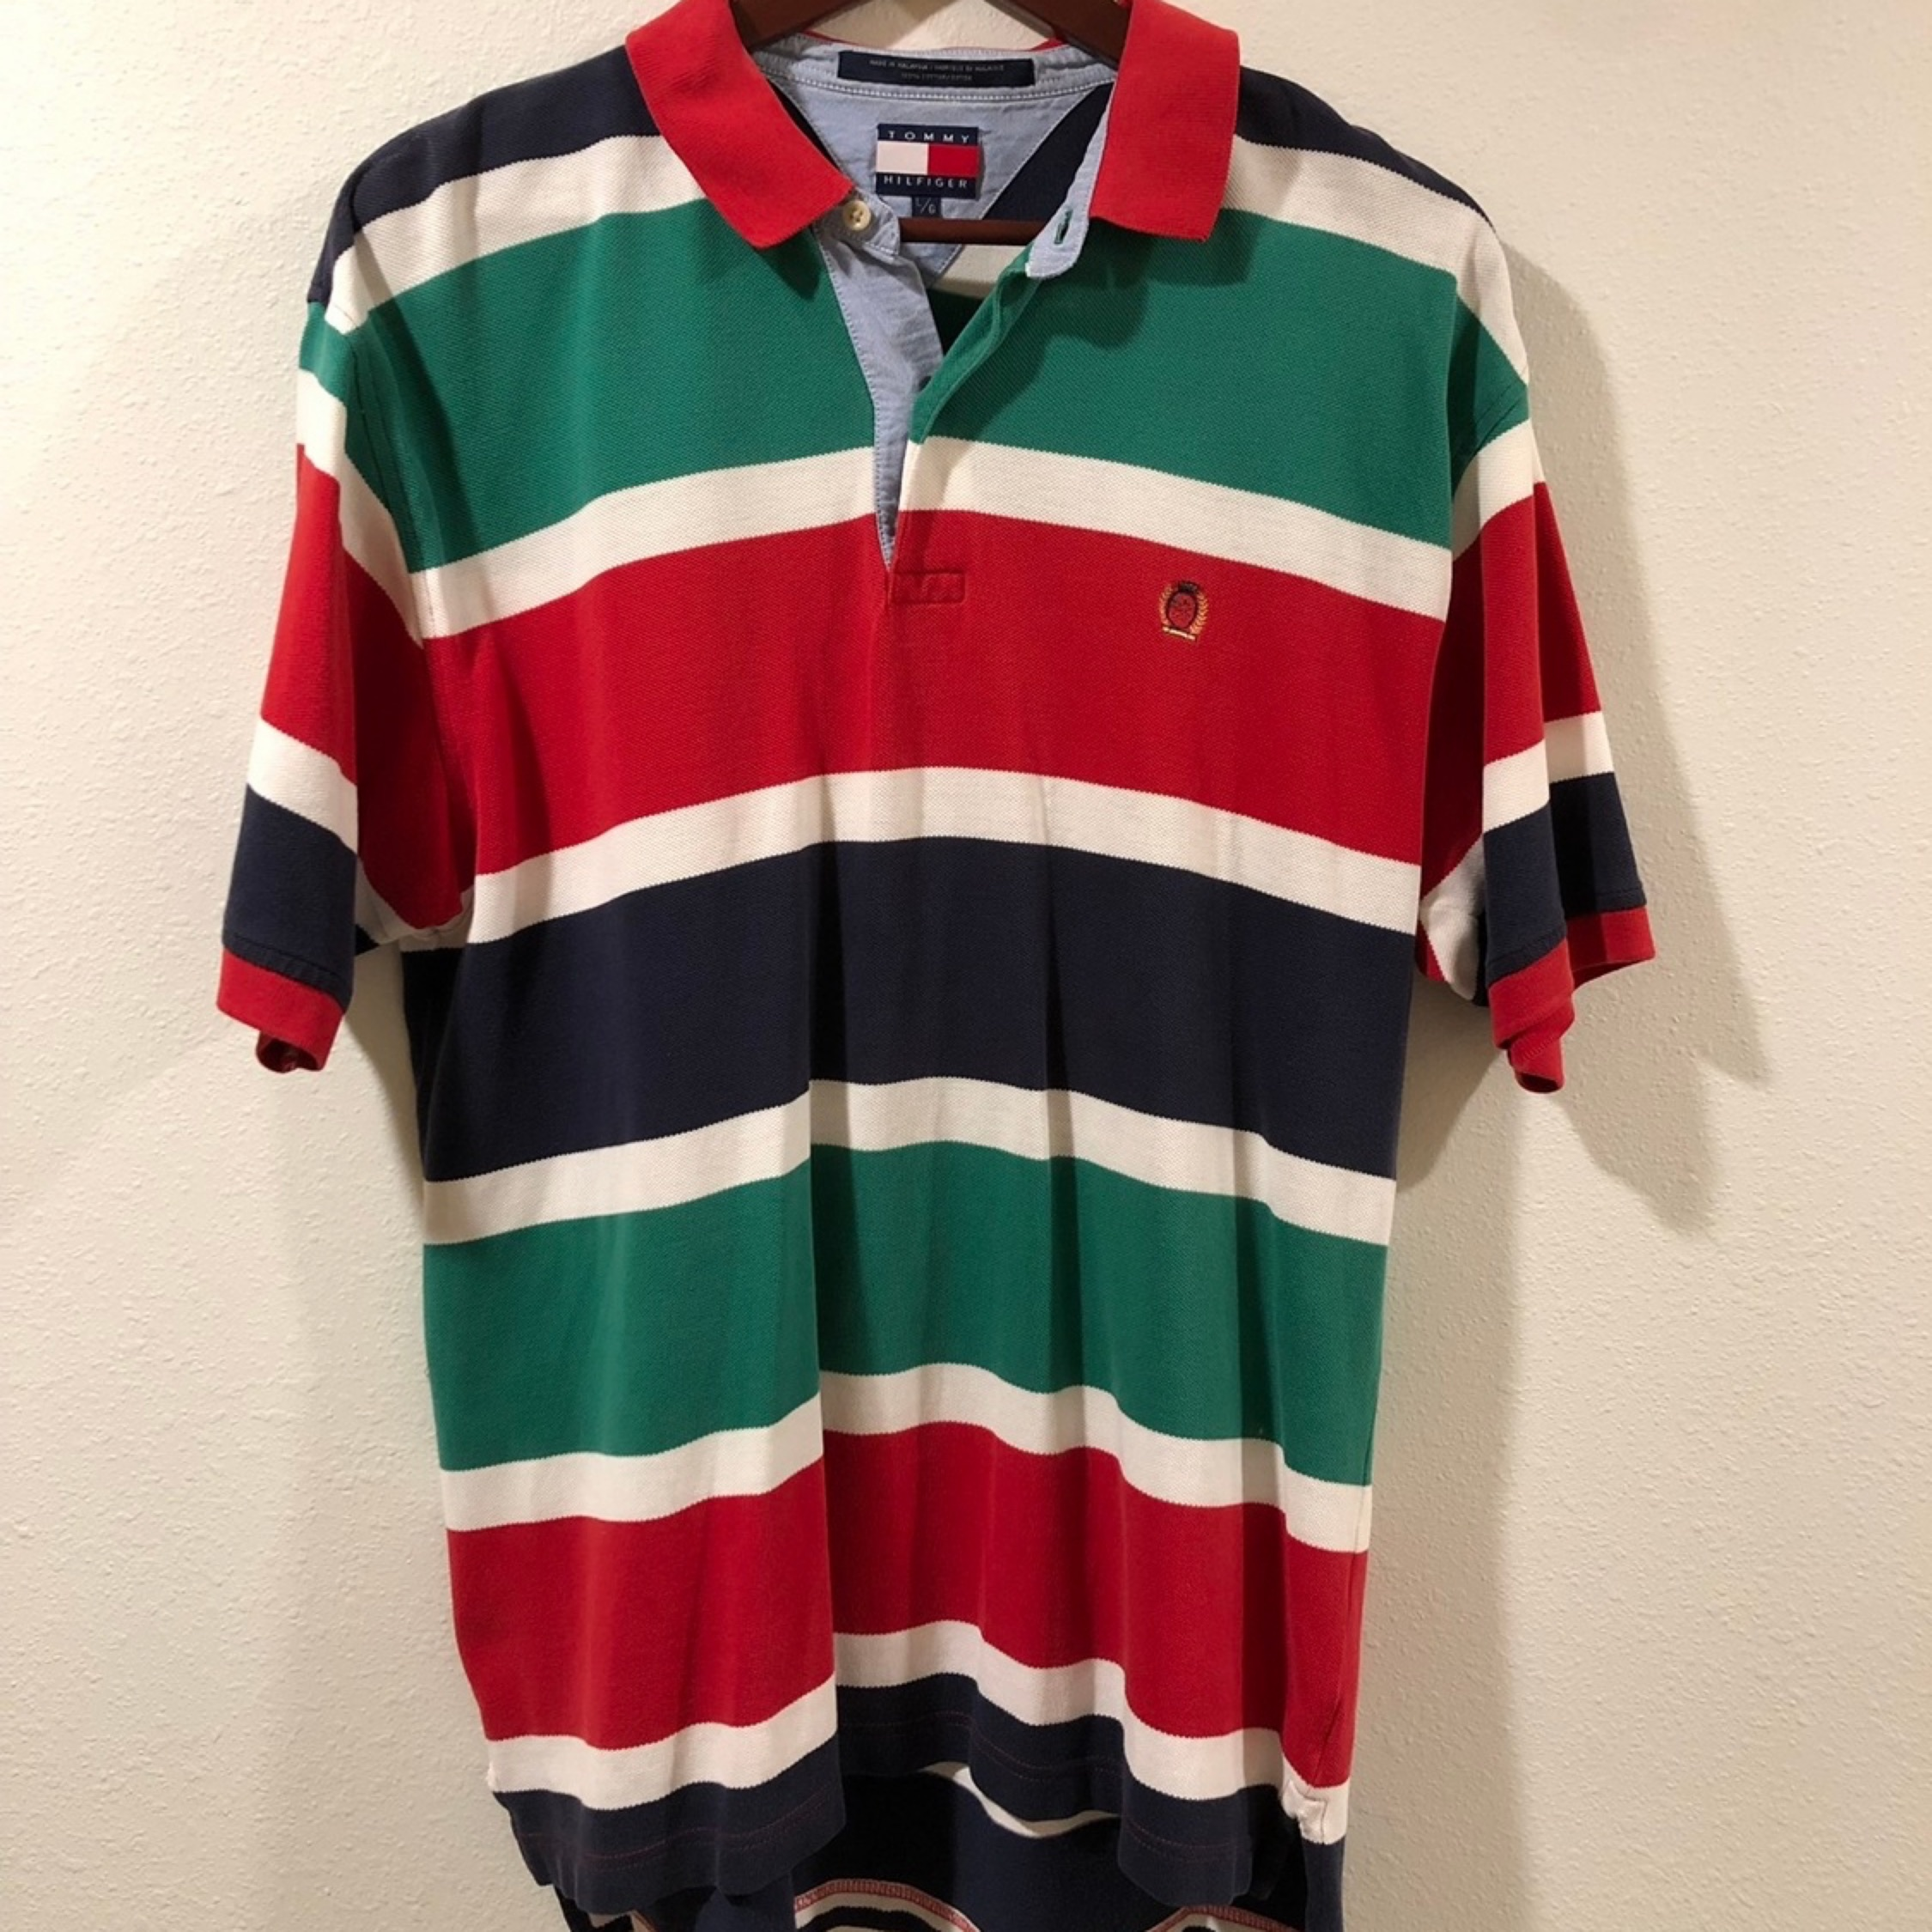 Authentic vintage Tommy Hilfiger polo shirt